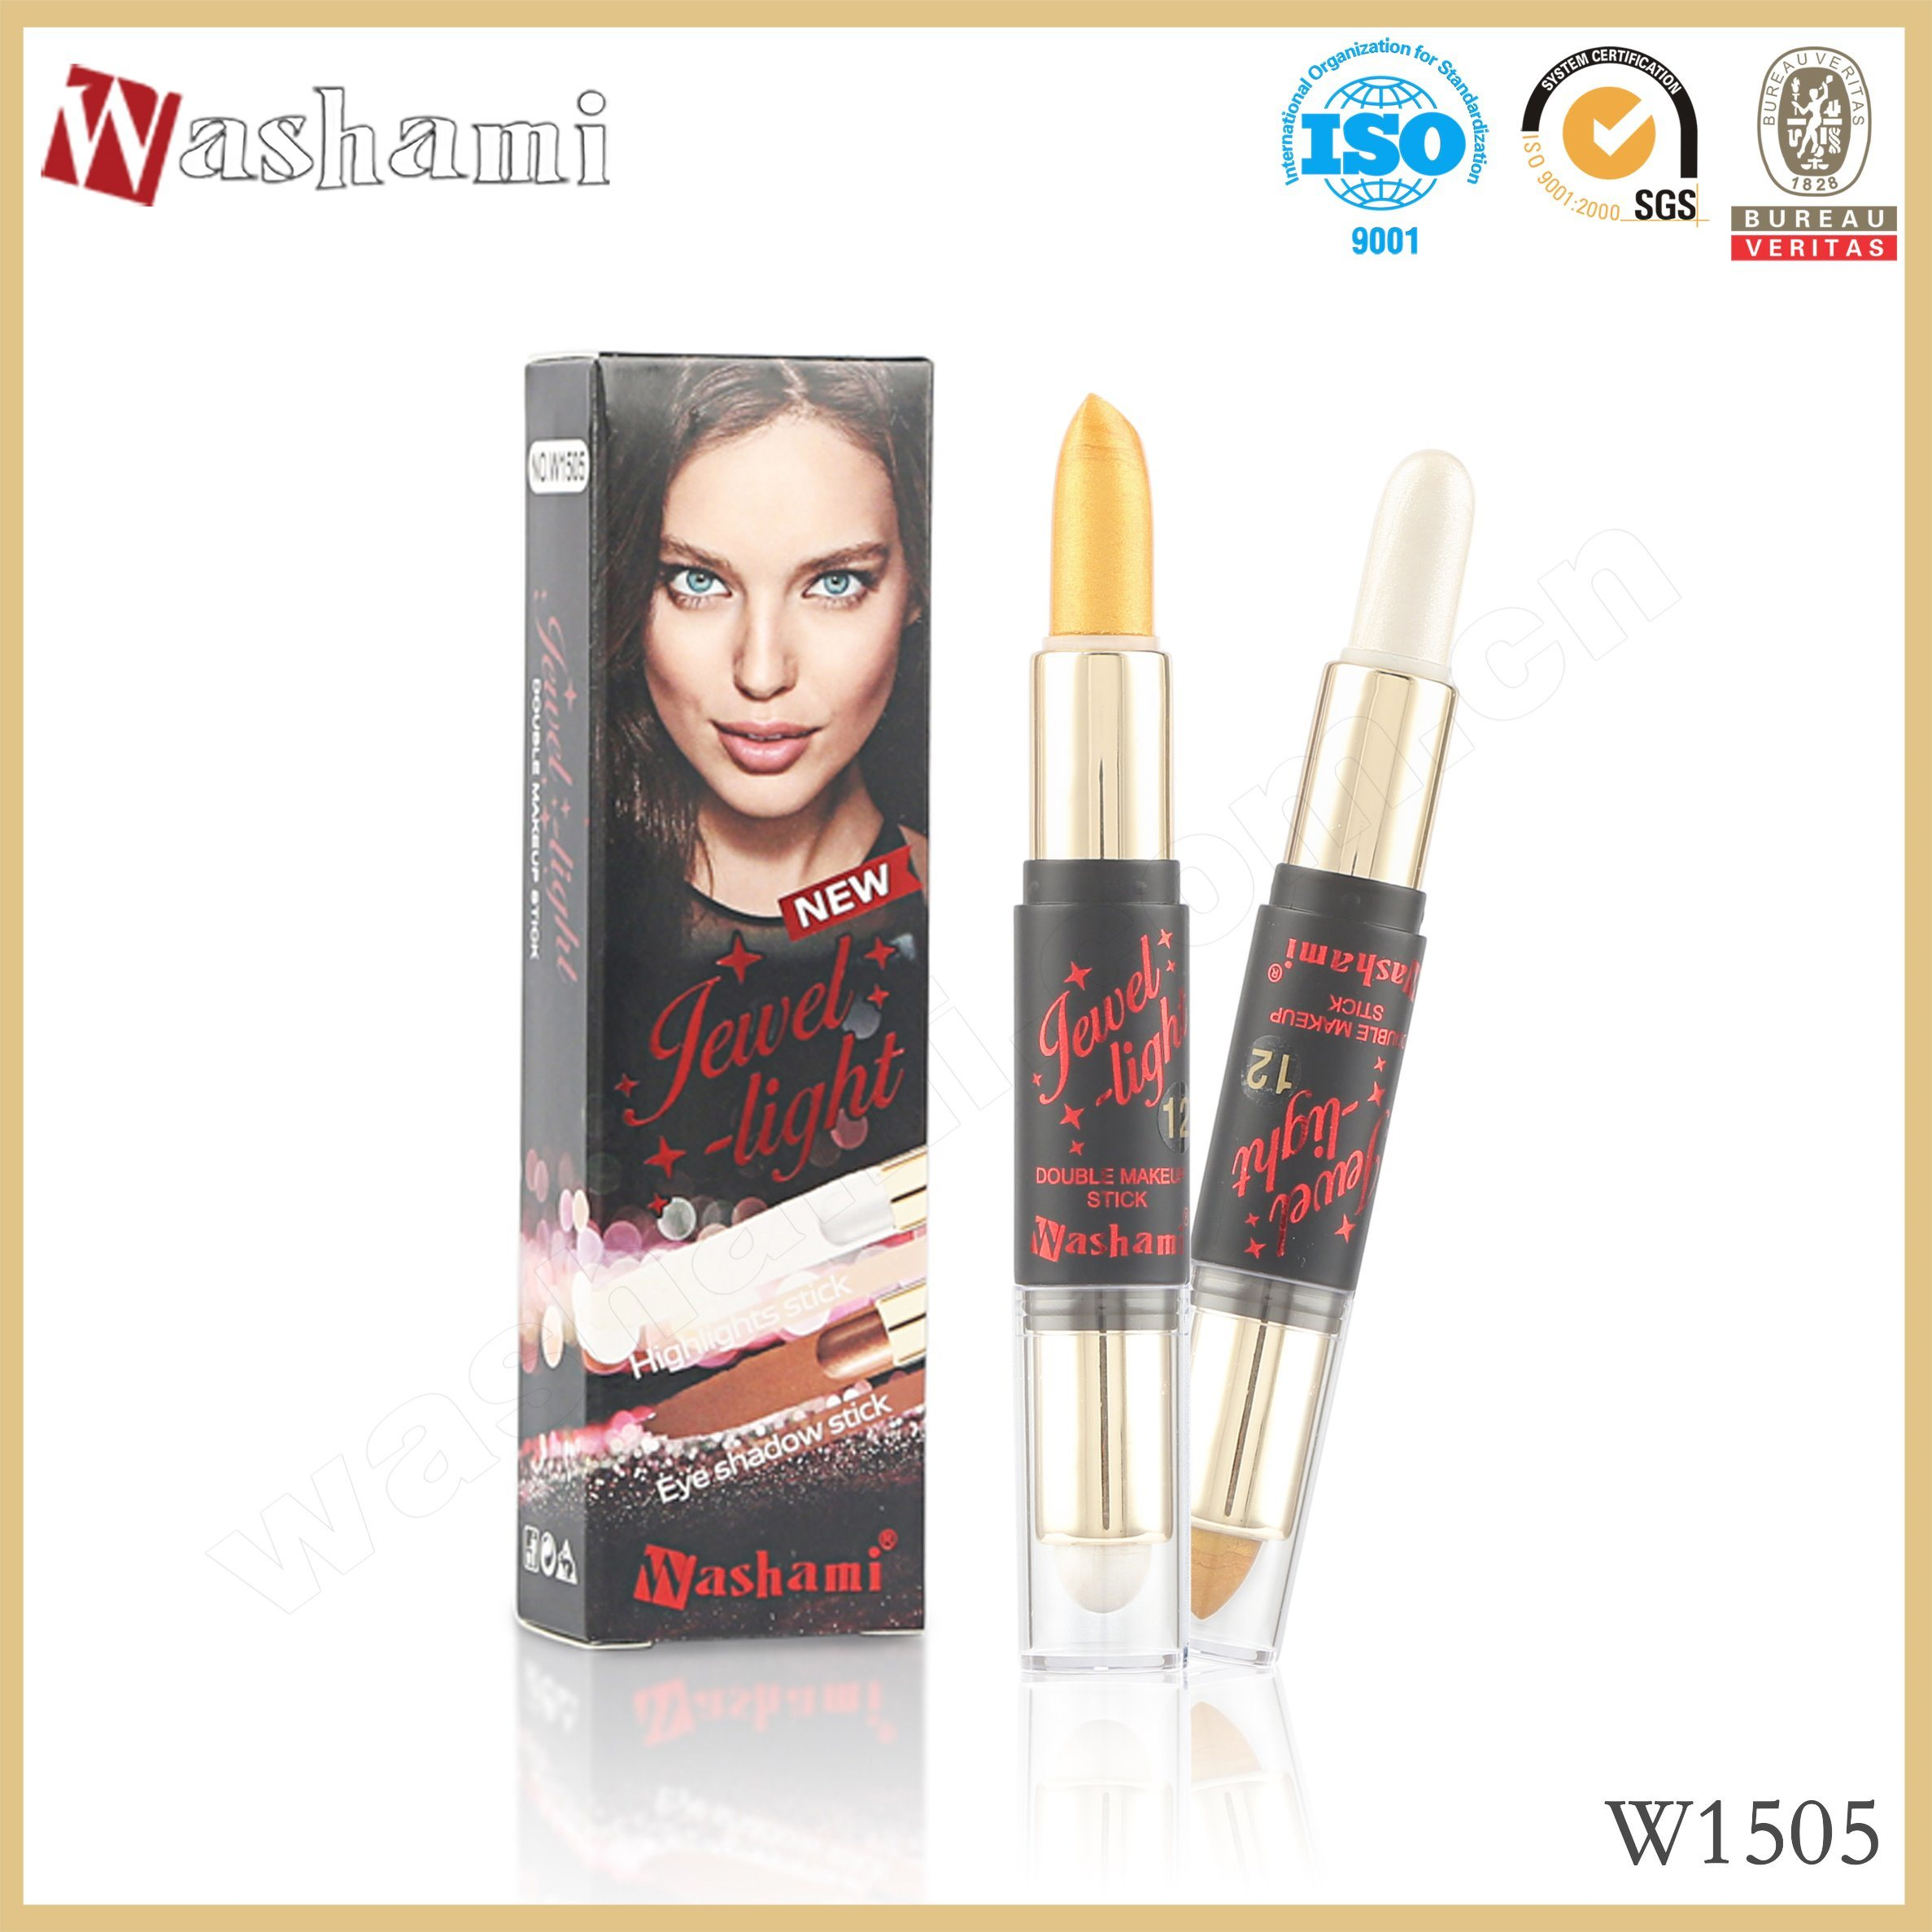 Washami Private Label 2 in 1 Makeup Eyeshadow & Highlight Pen